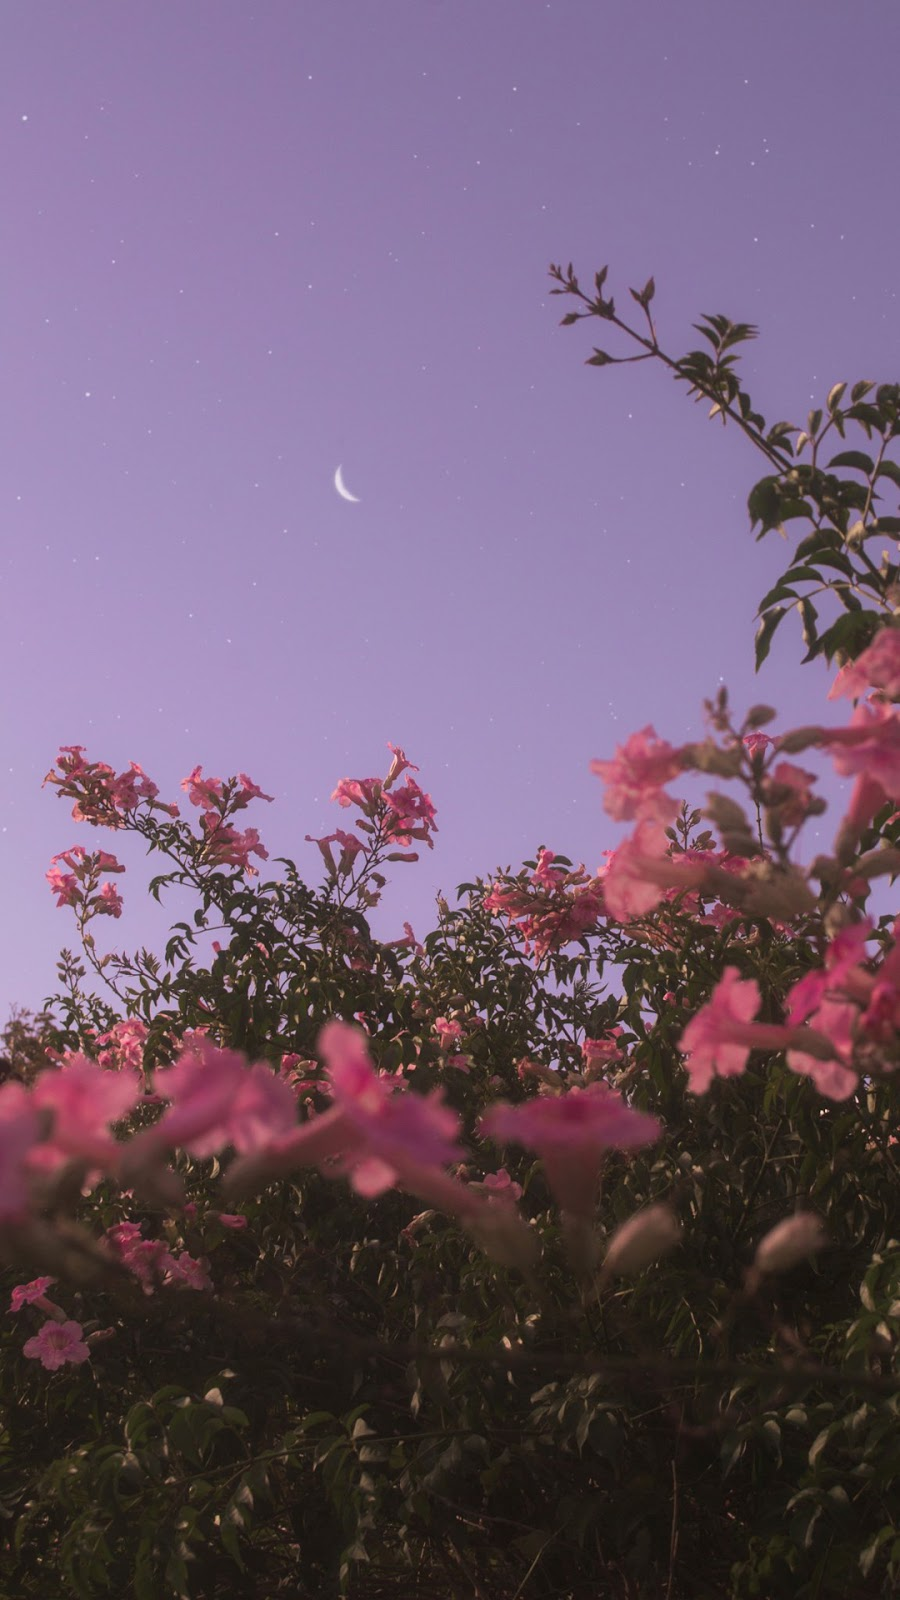 Flower Under Night Sky Flower Wallpaper Aesthetic 2408108 Hd Wallpaper Backgrounds Download